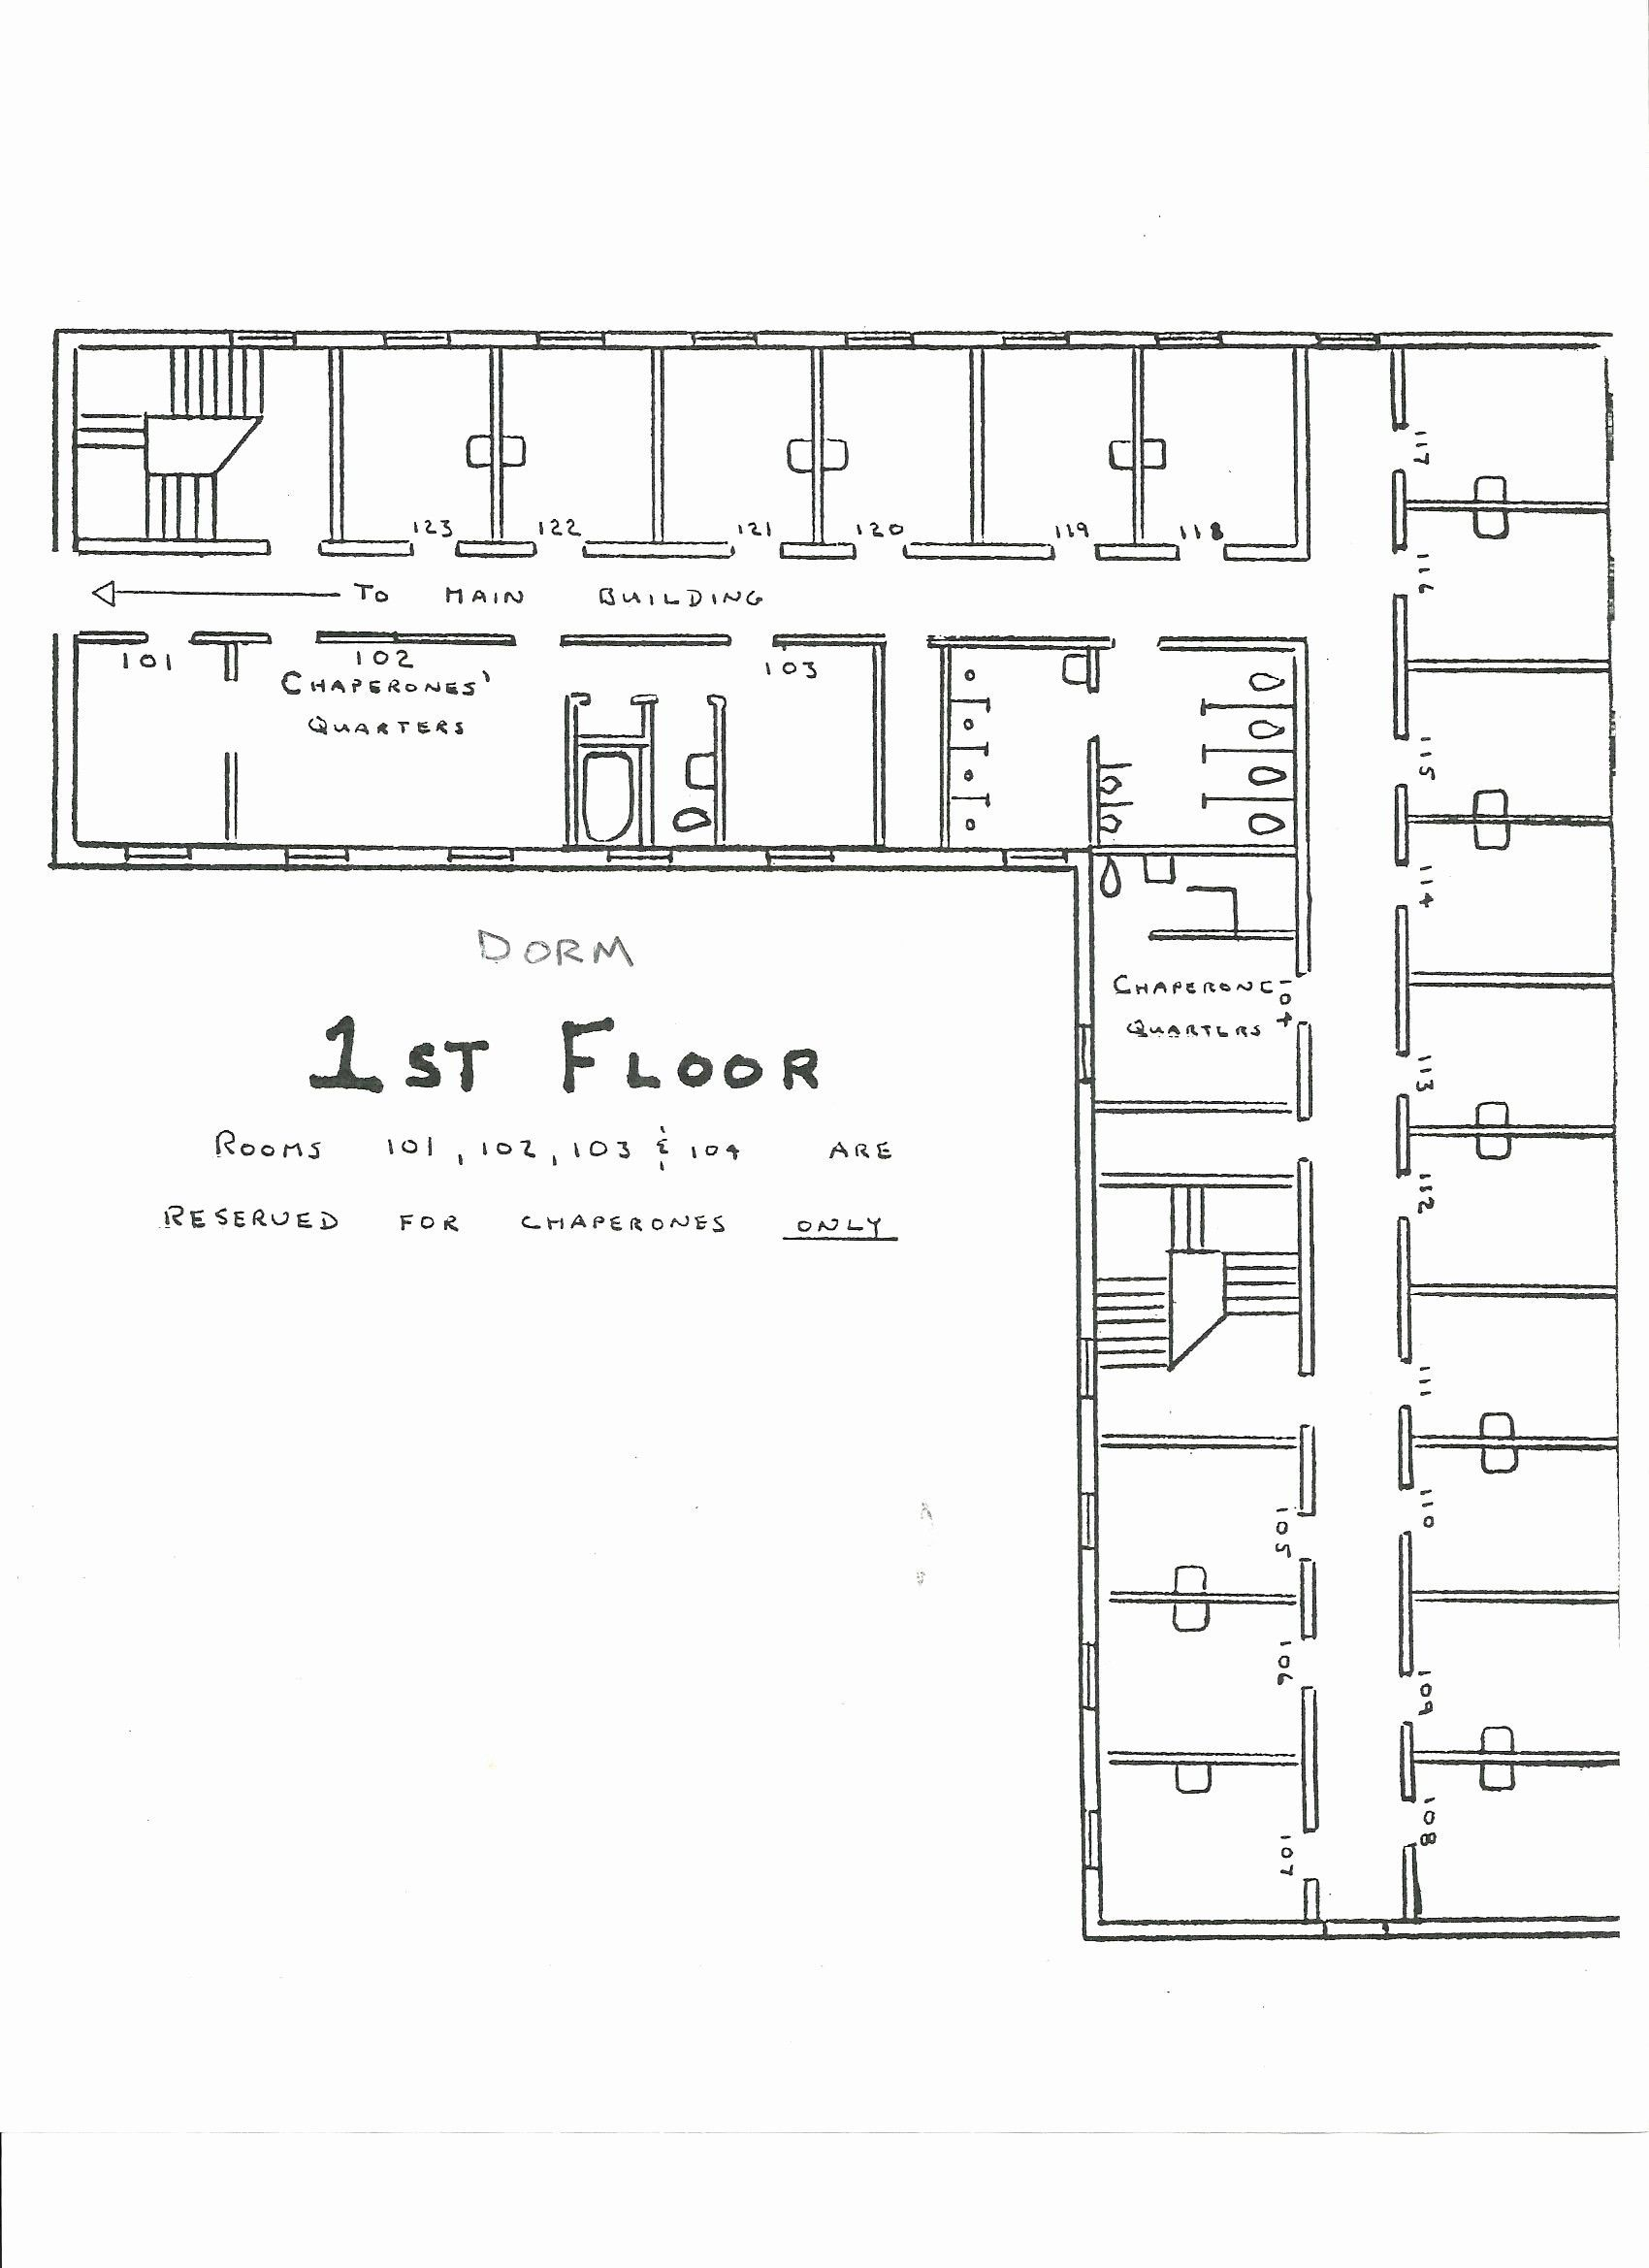 27 Stunning Floor Plan Design Online The Basis For Building A House Or Building Level Is To Use A F Farmhouse Floor Plans House Floor Plans Floor Plan Design